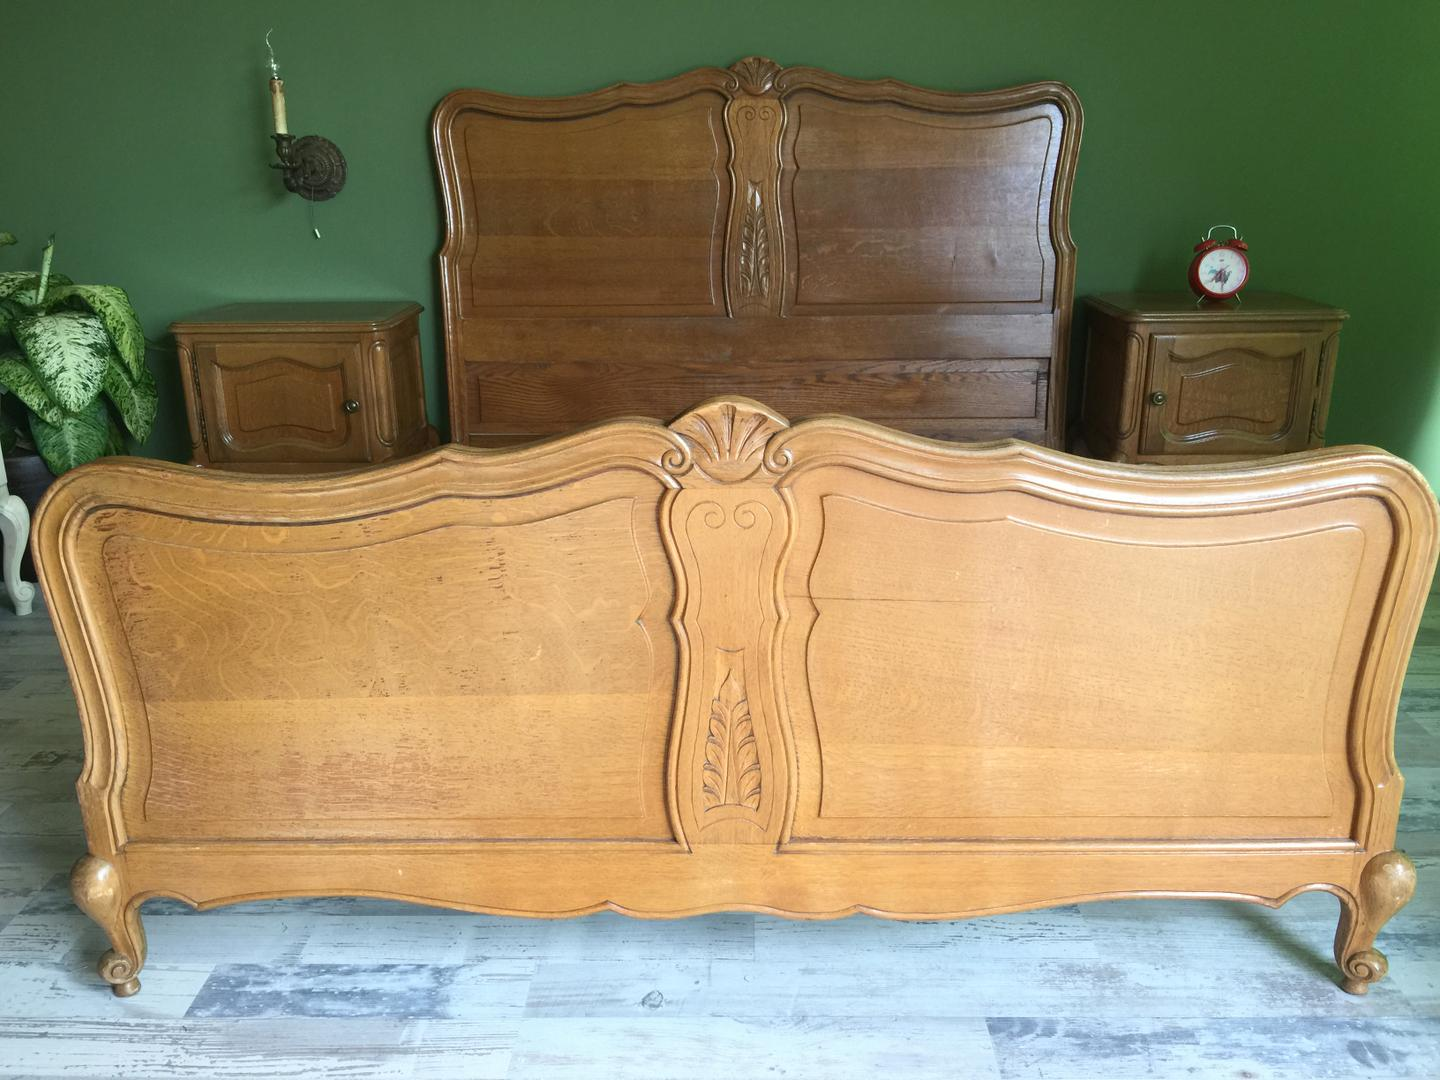 Queen Anne bed